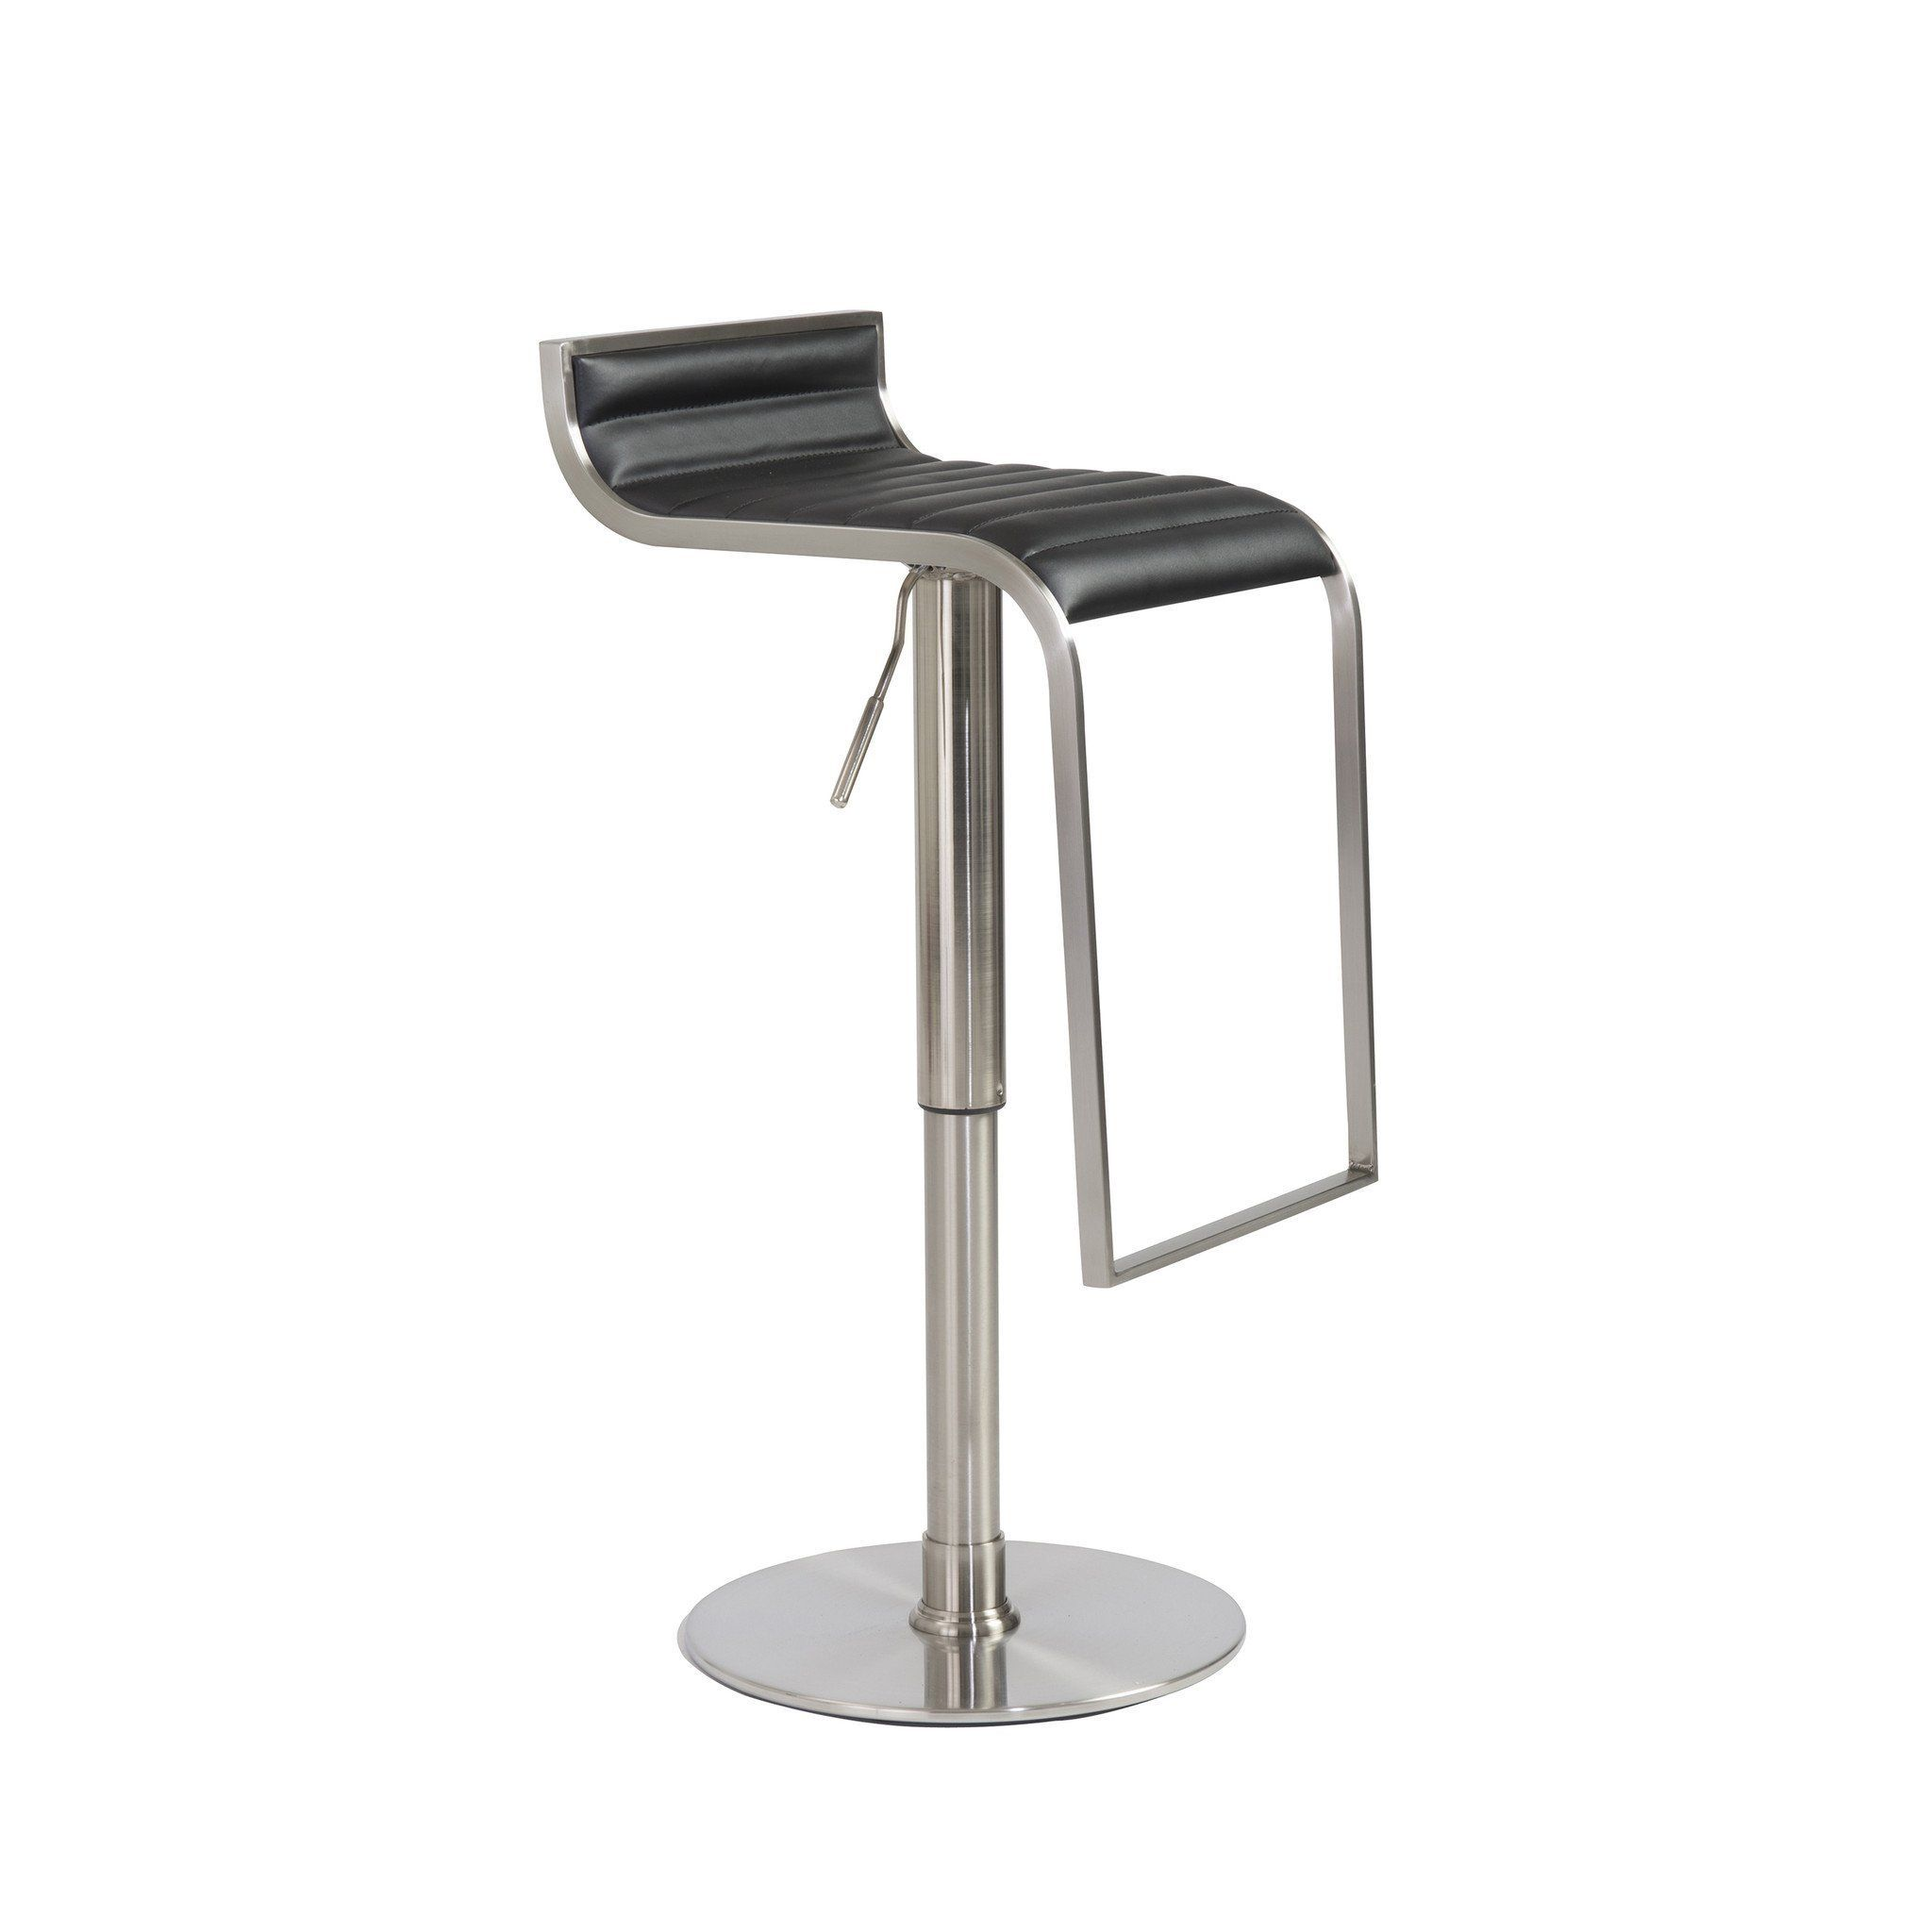 Pleasant Euro Style Forest Bar Counter Stool In Black Satin Nickel Machost Co Dining Chair Design Ideas Machostcouk